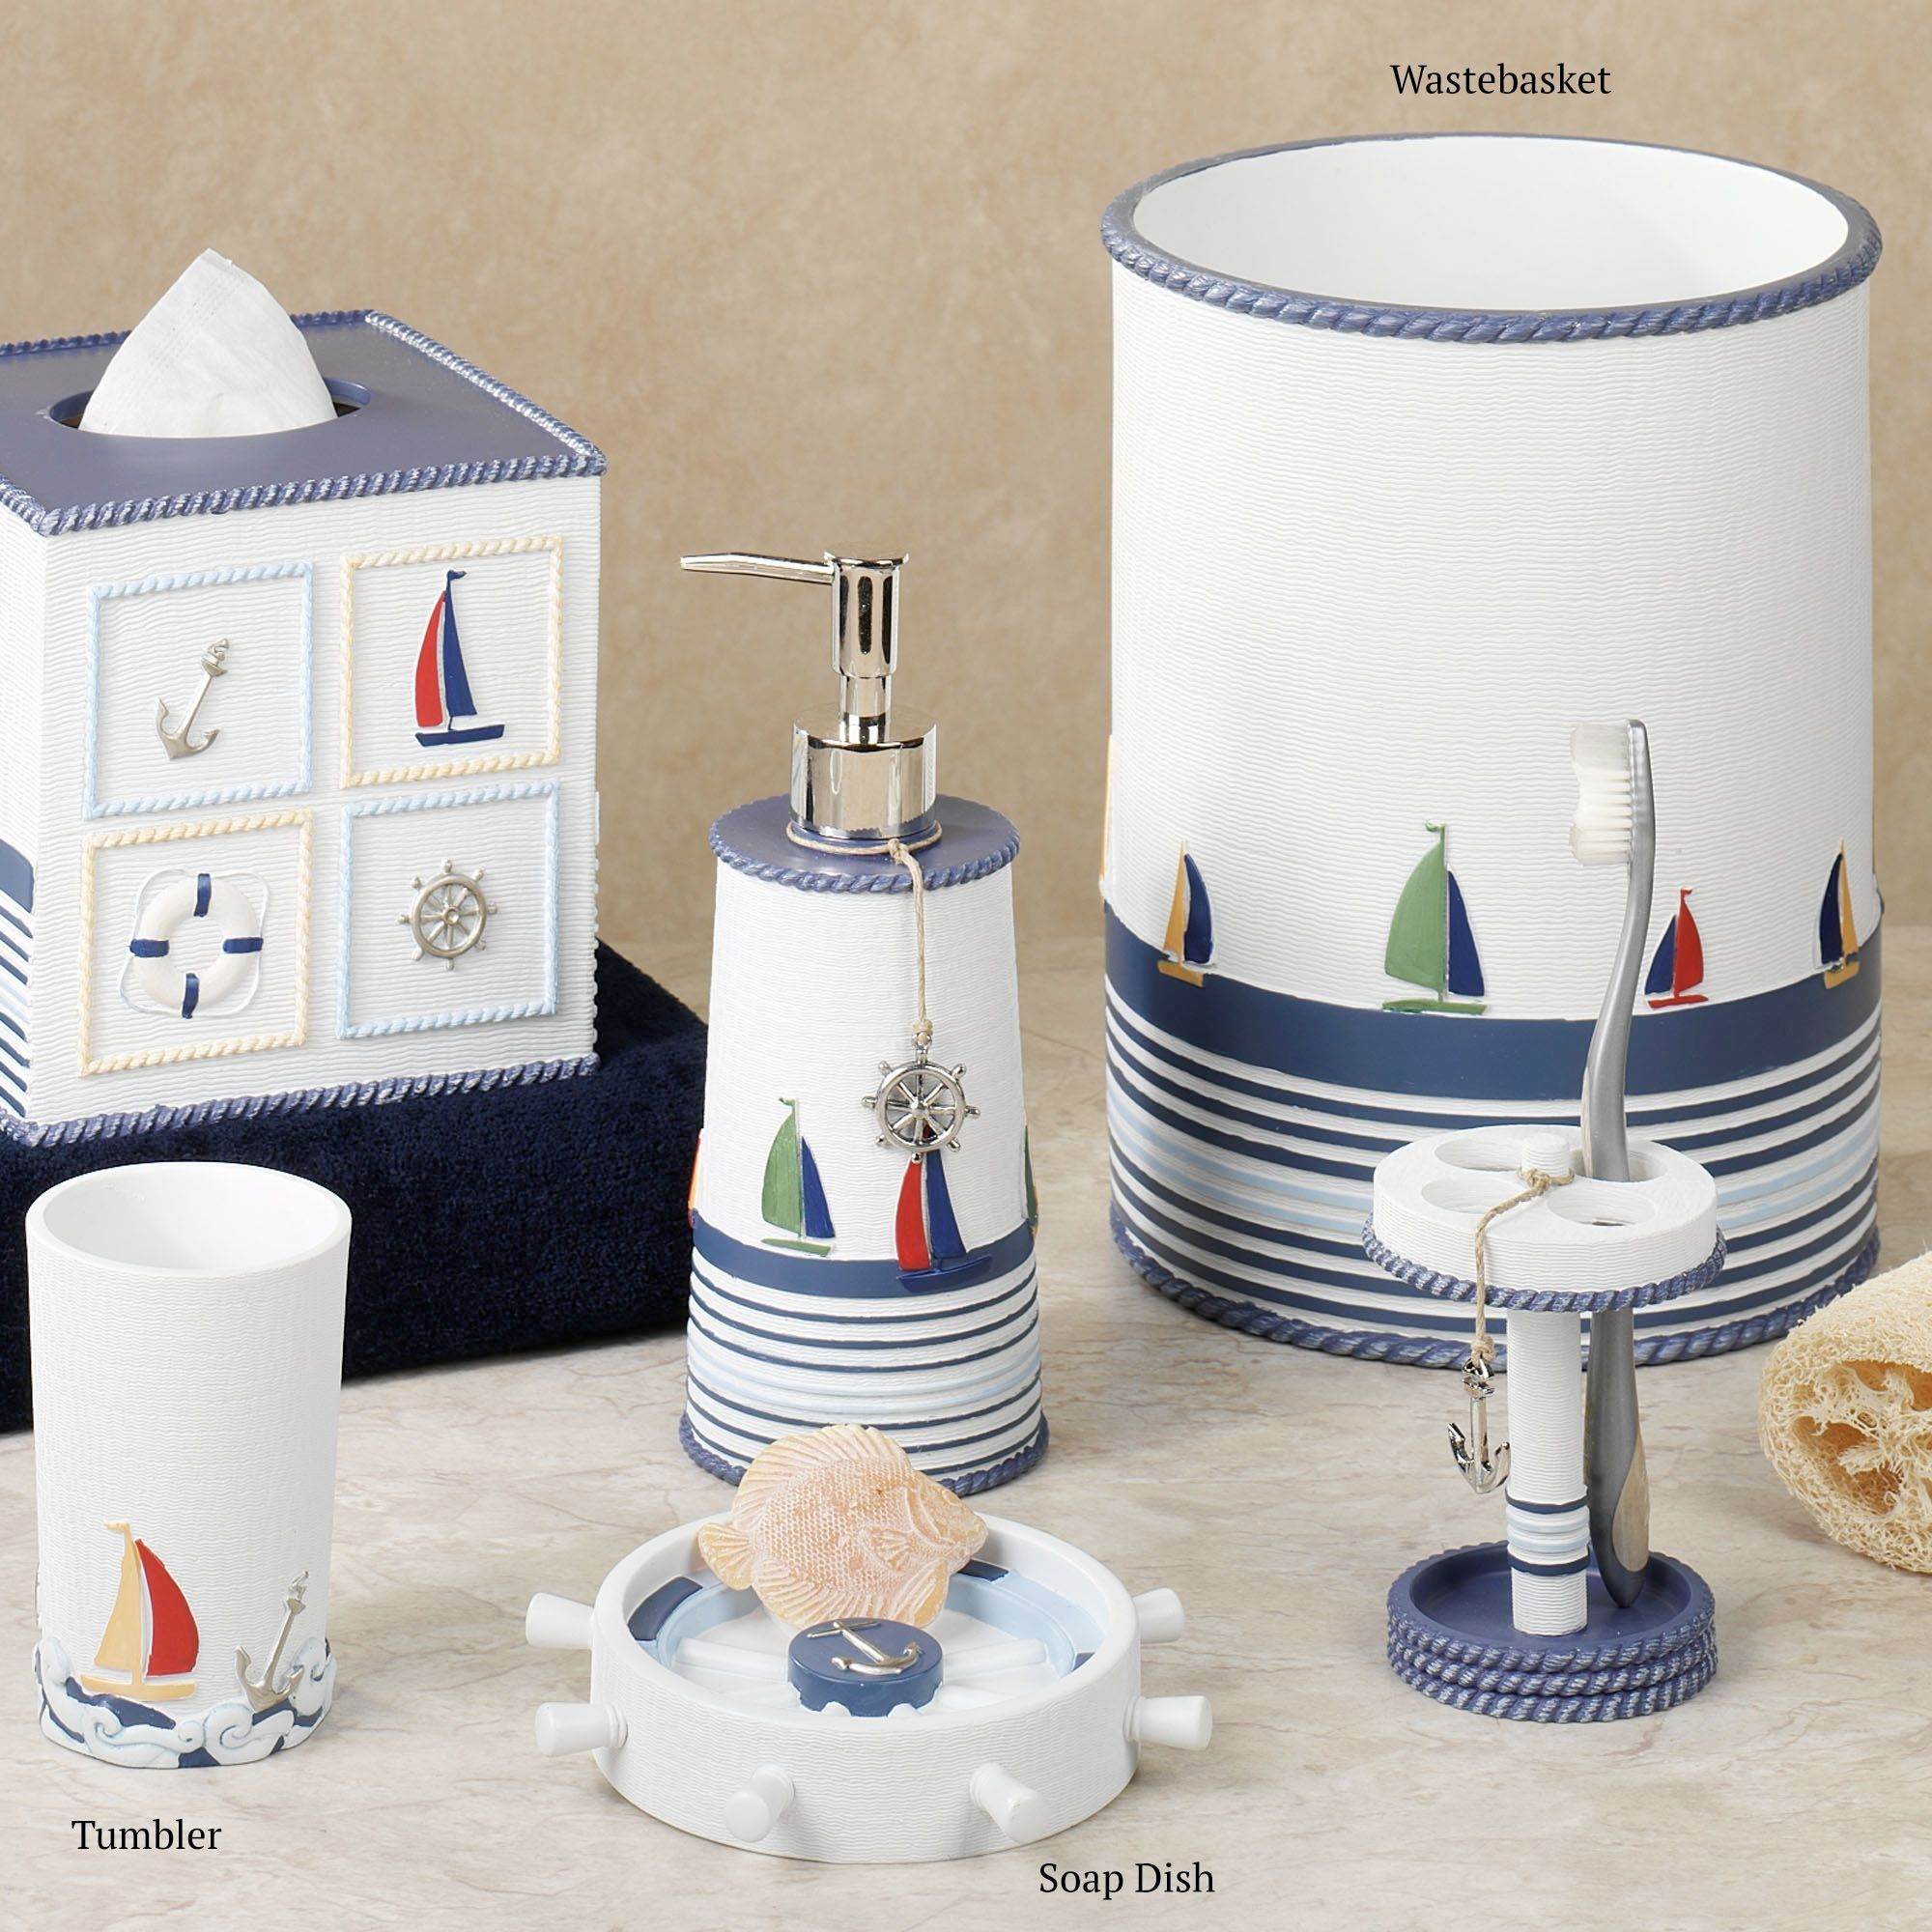 Sailboat Themed Bathroom Accessories   Intelligent Utilization Of Toilet  Accessories Can Create The Impression Of An Entirely